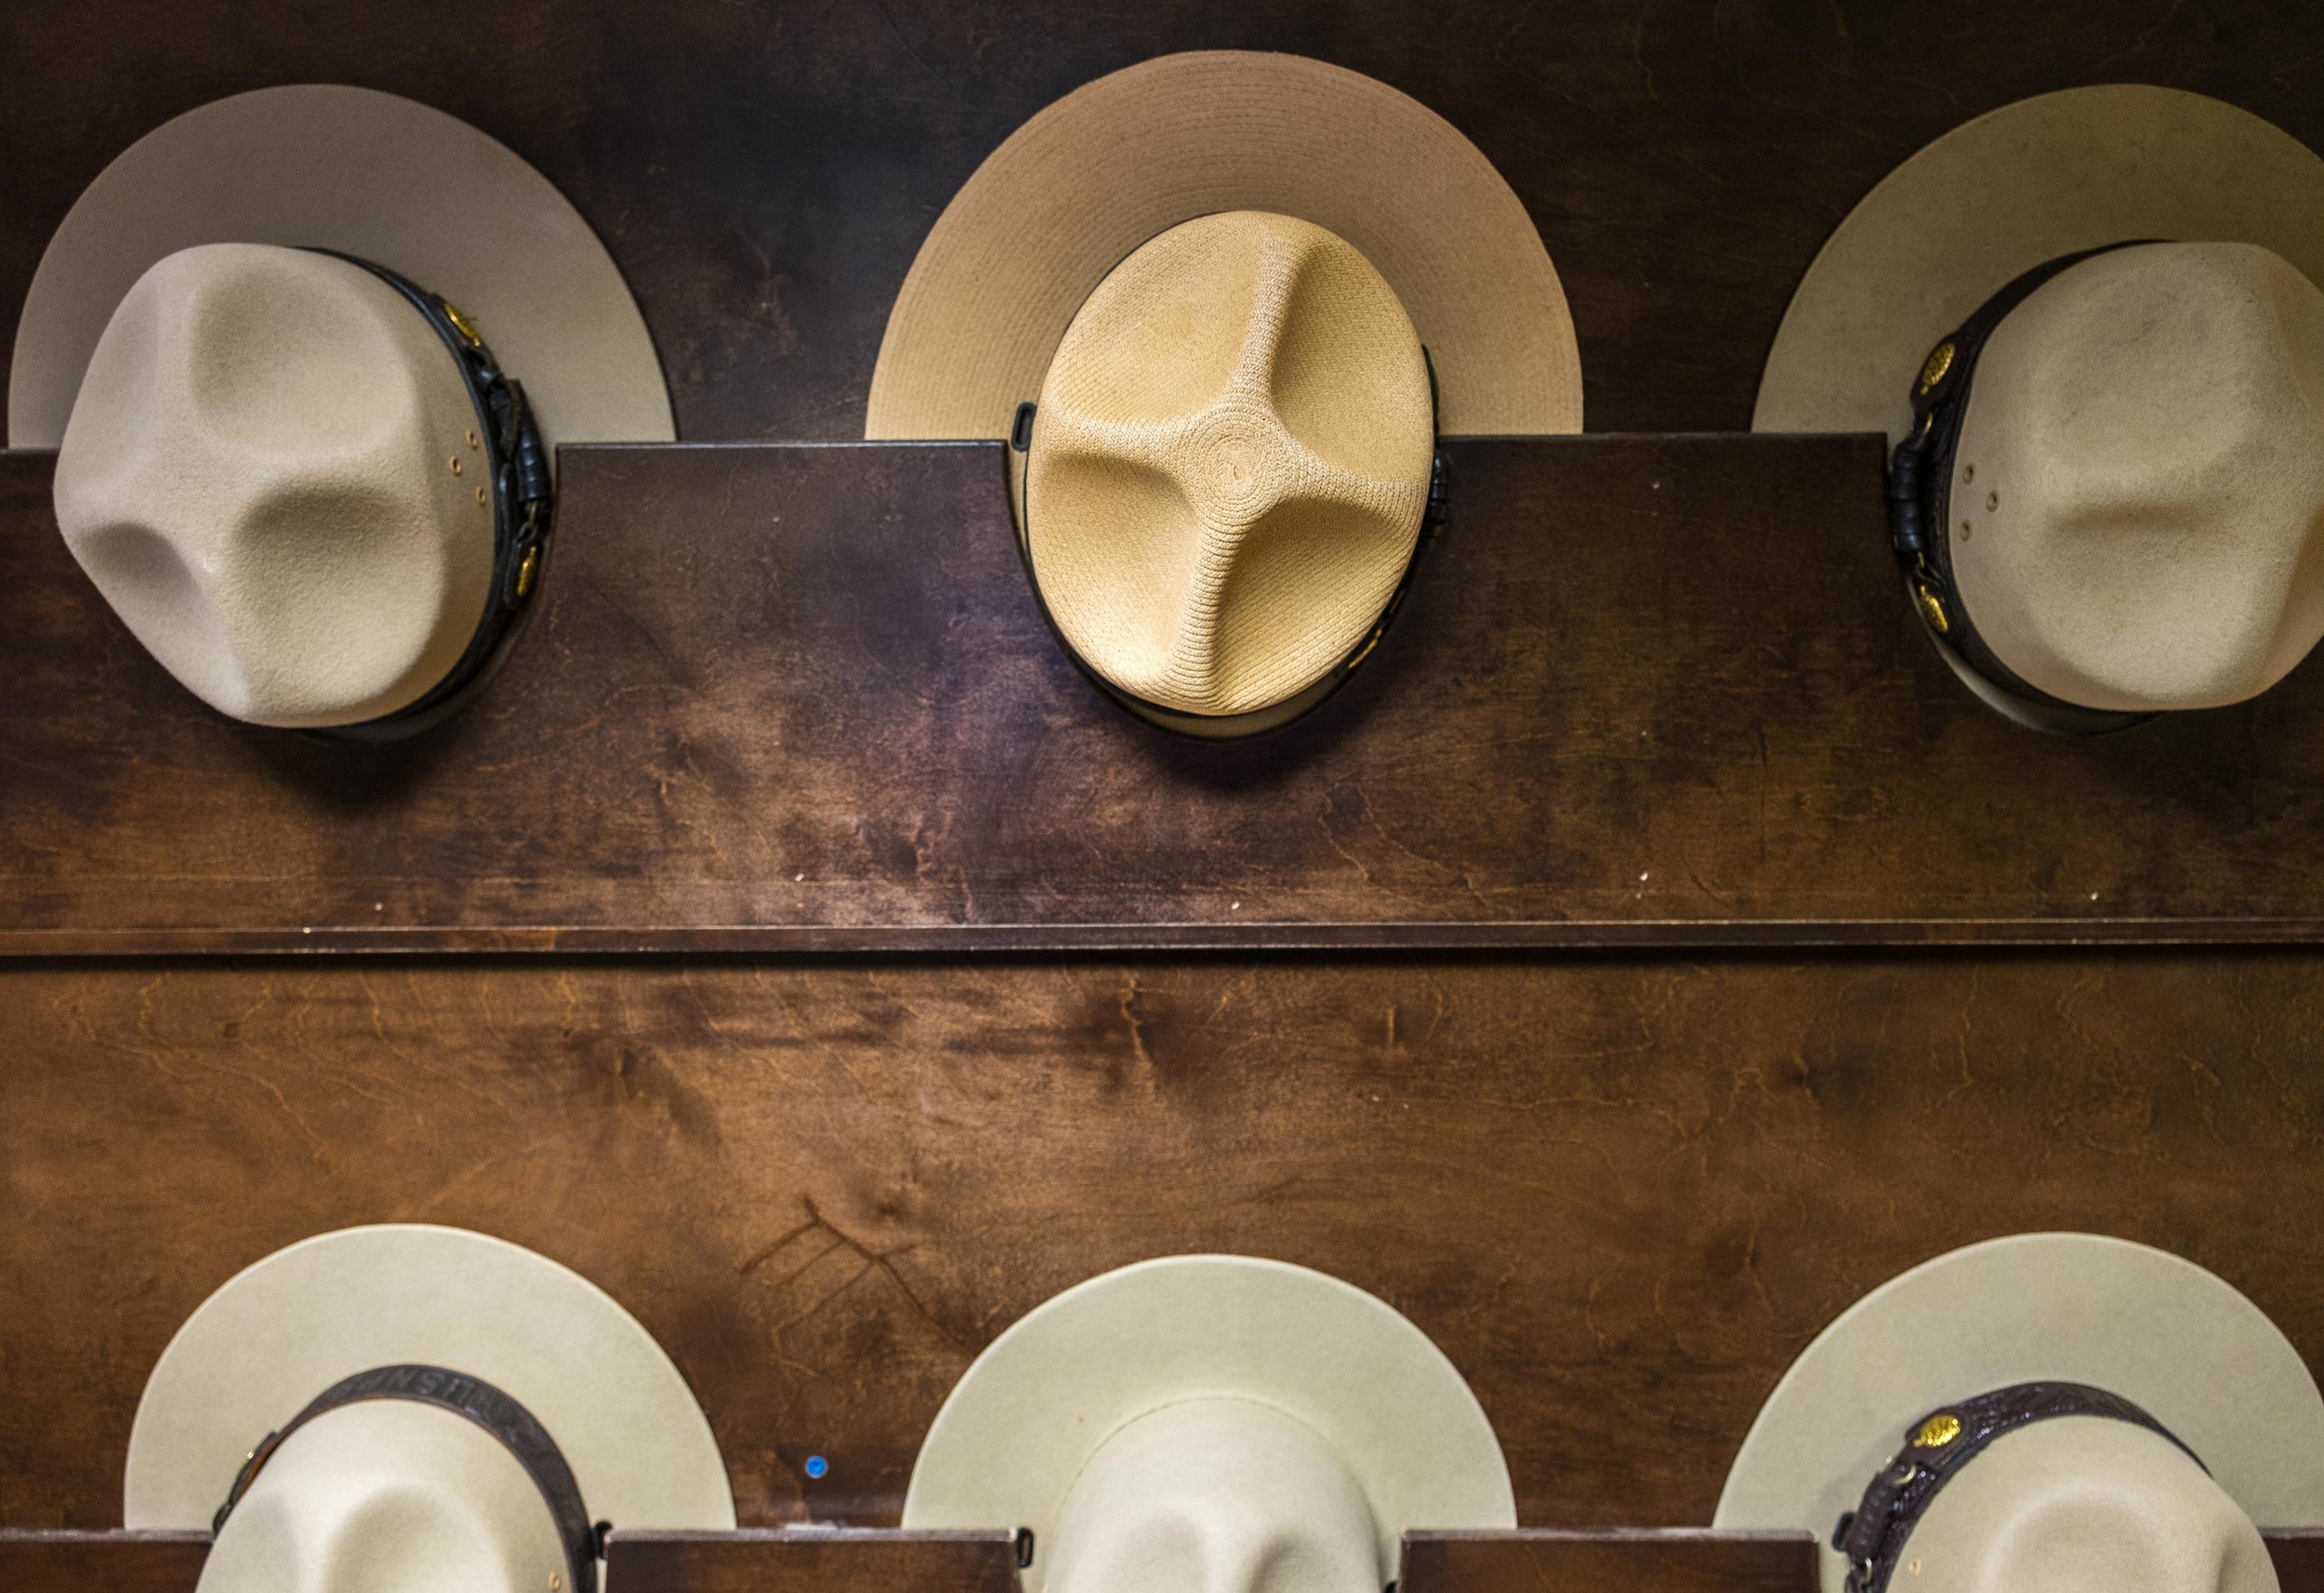 Before heading down in the cave we had a meeting with the rangers. We had hat-envy with this wall of Ranger hats.